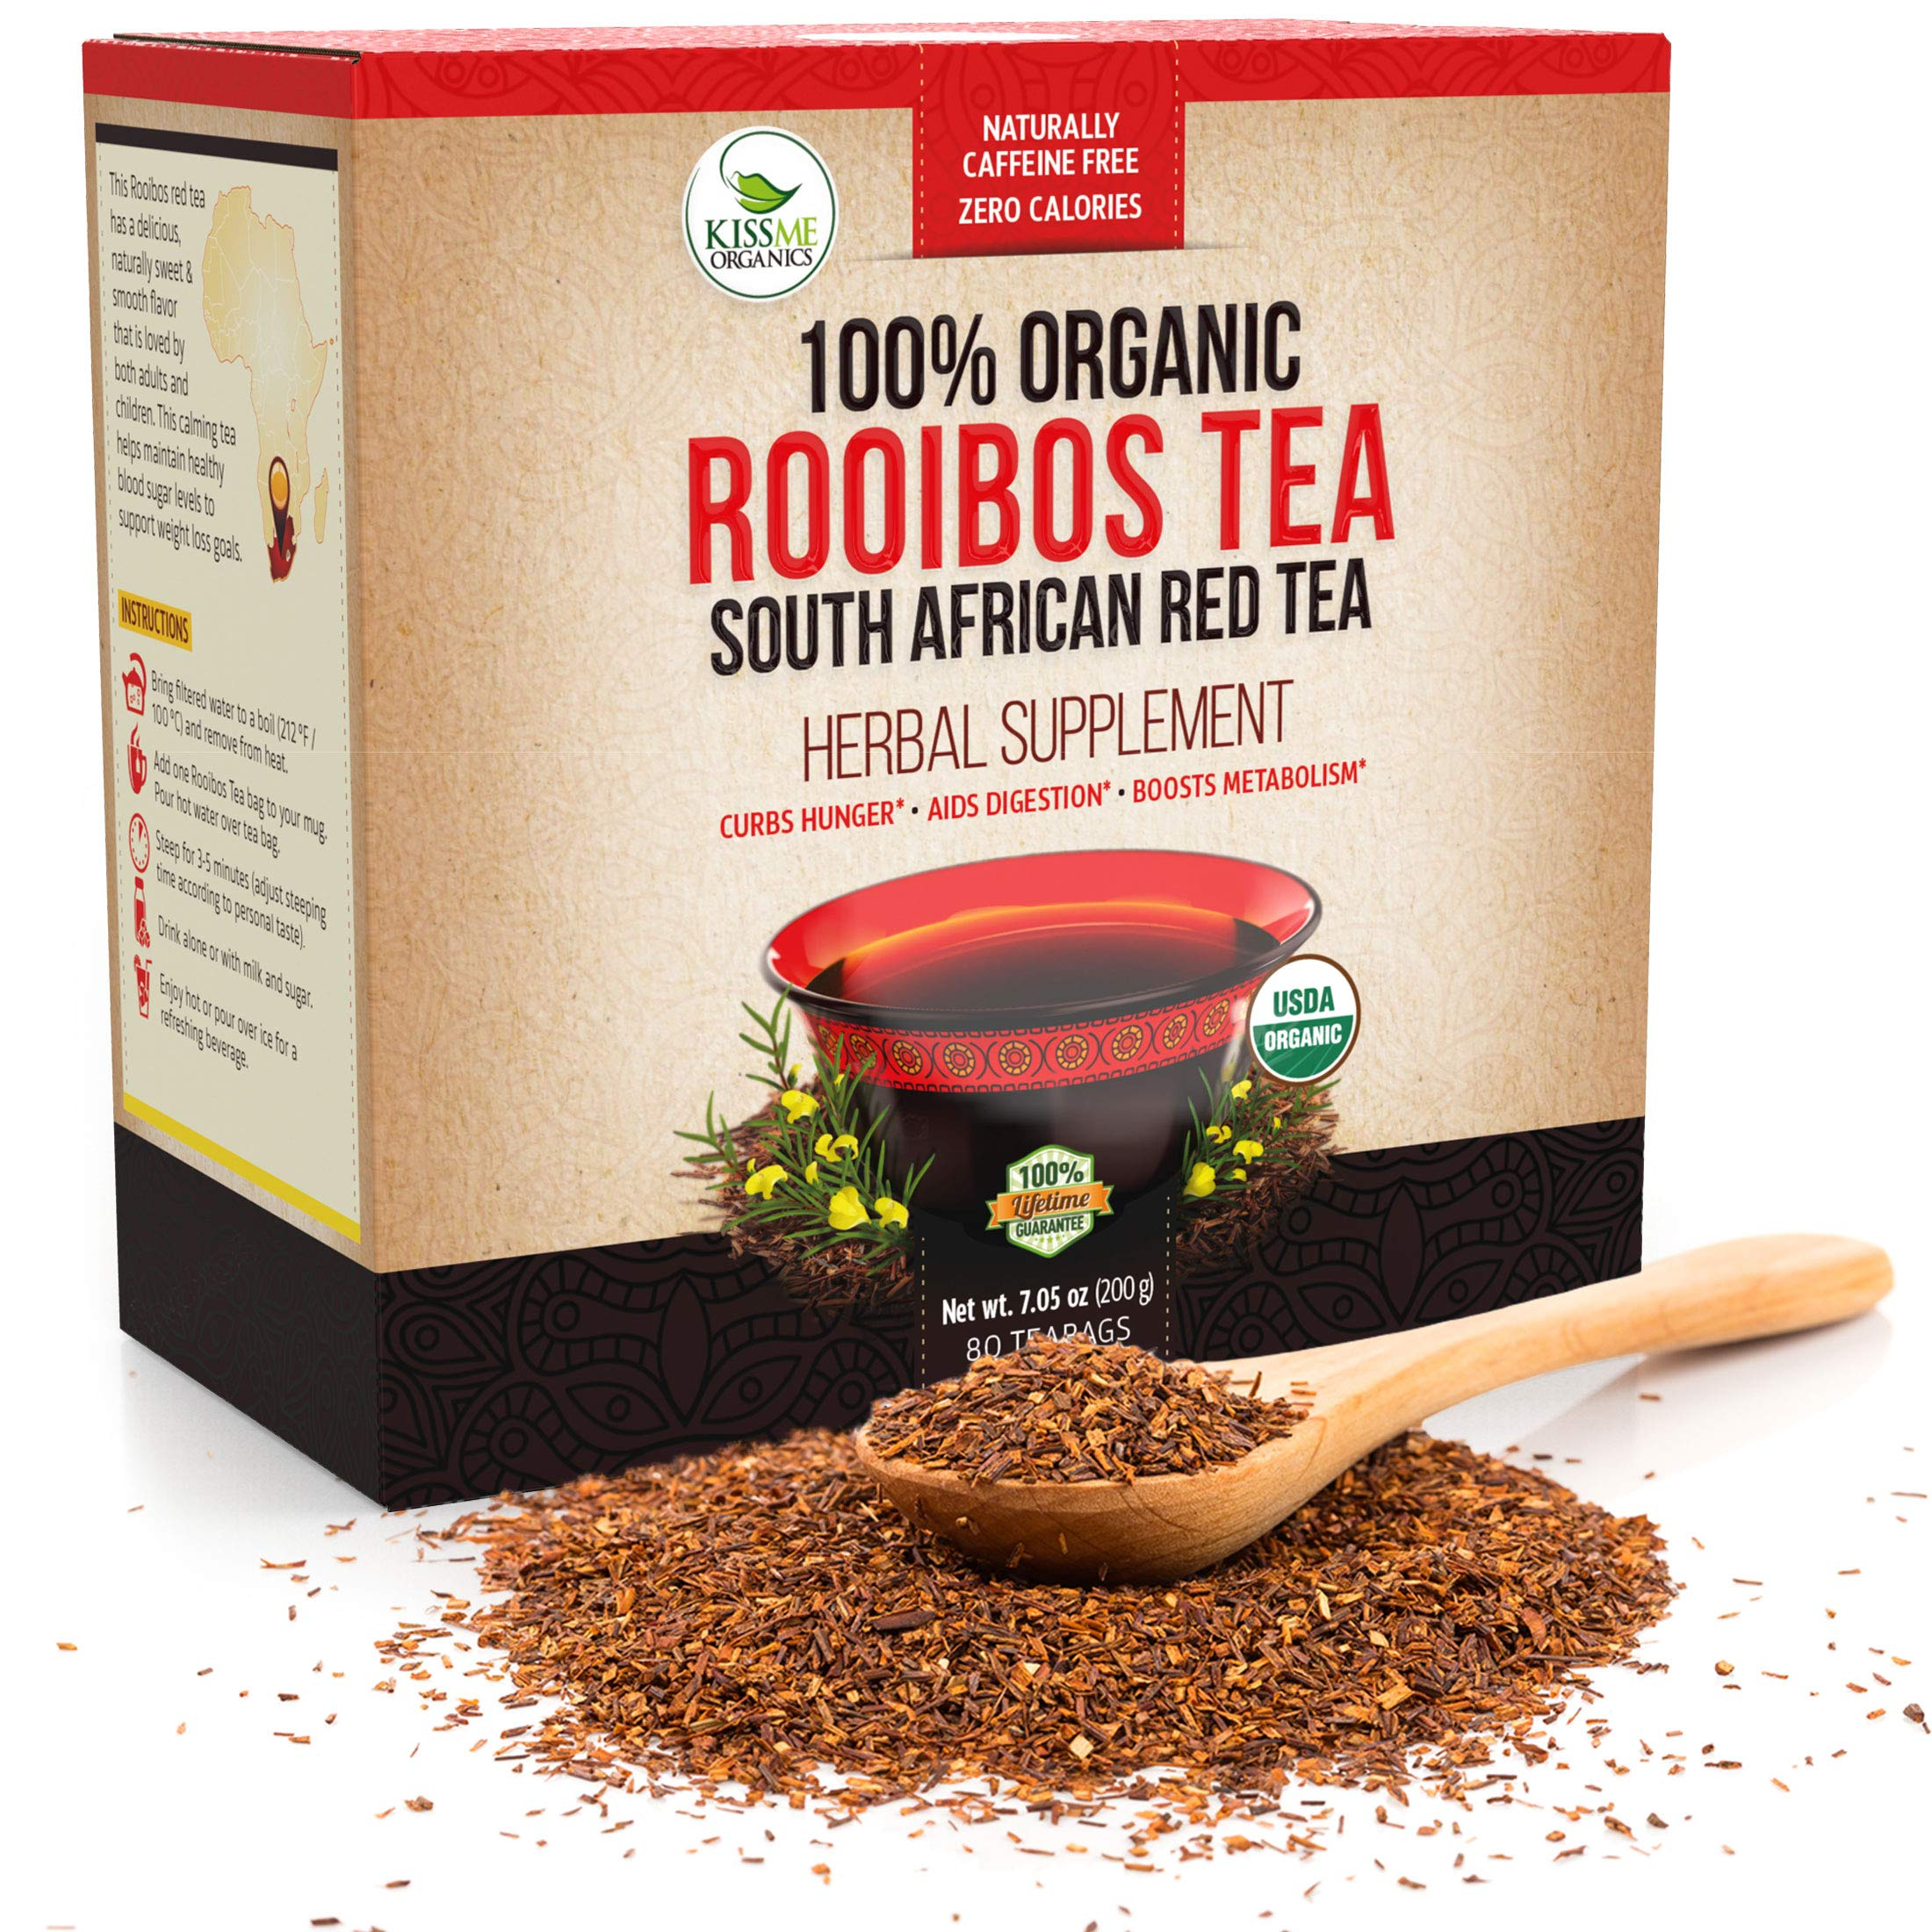 Organic Rooibos Tea Bags - Caffeine Free South African Red Tea Detox - Herbal Antioxidant Drink from Africa - Aids Digestion and Boosts Metabolism - 80 Tea Bags by Kiss Me Organics